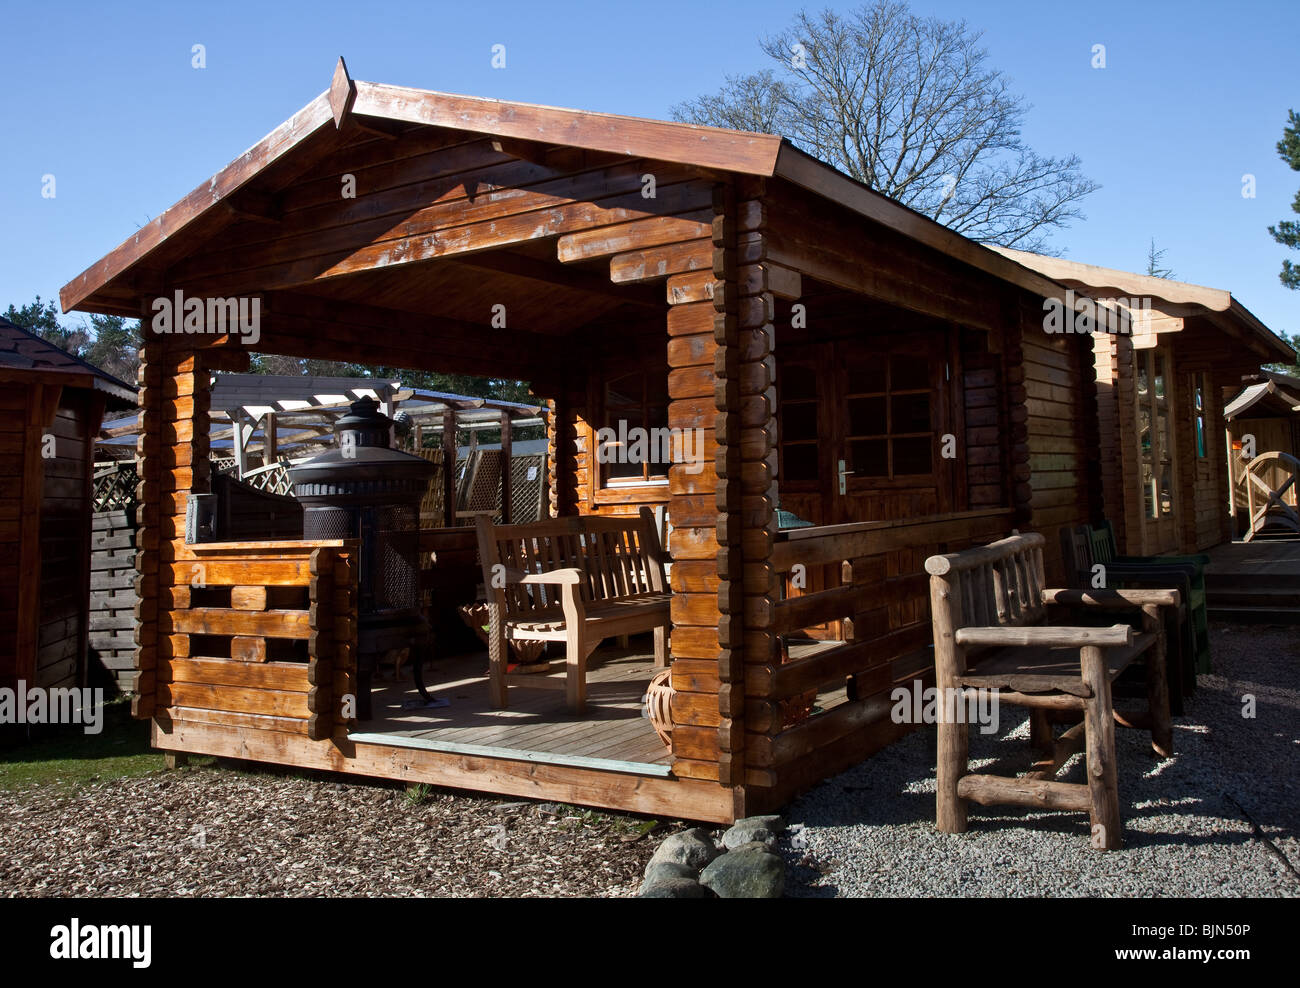 Garden Shed, Outbuilding, chalet, garden, house, architecture, summer, home, wood, nature, building, cottage, Summerhouse - Stock Image